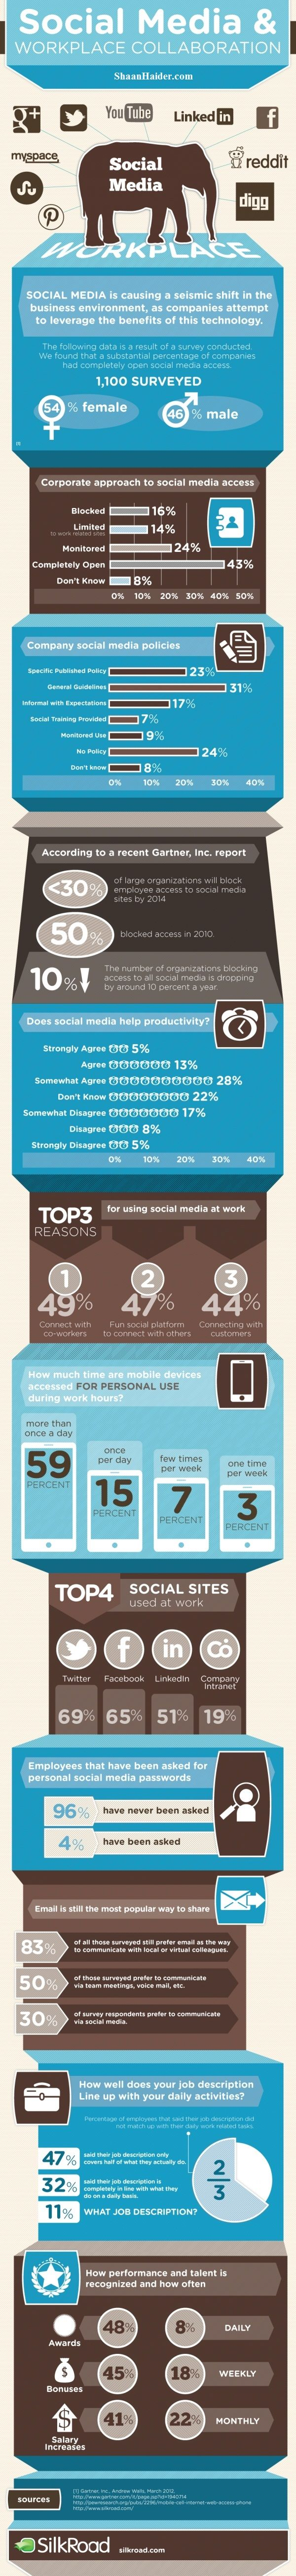 The Good and Bad of Using Social Media at Work (Infographic)